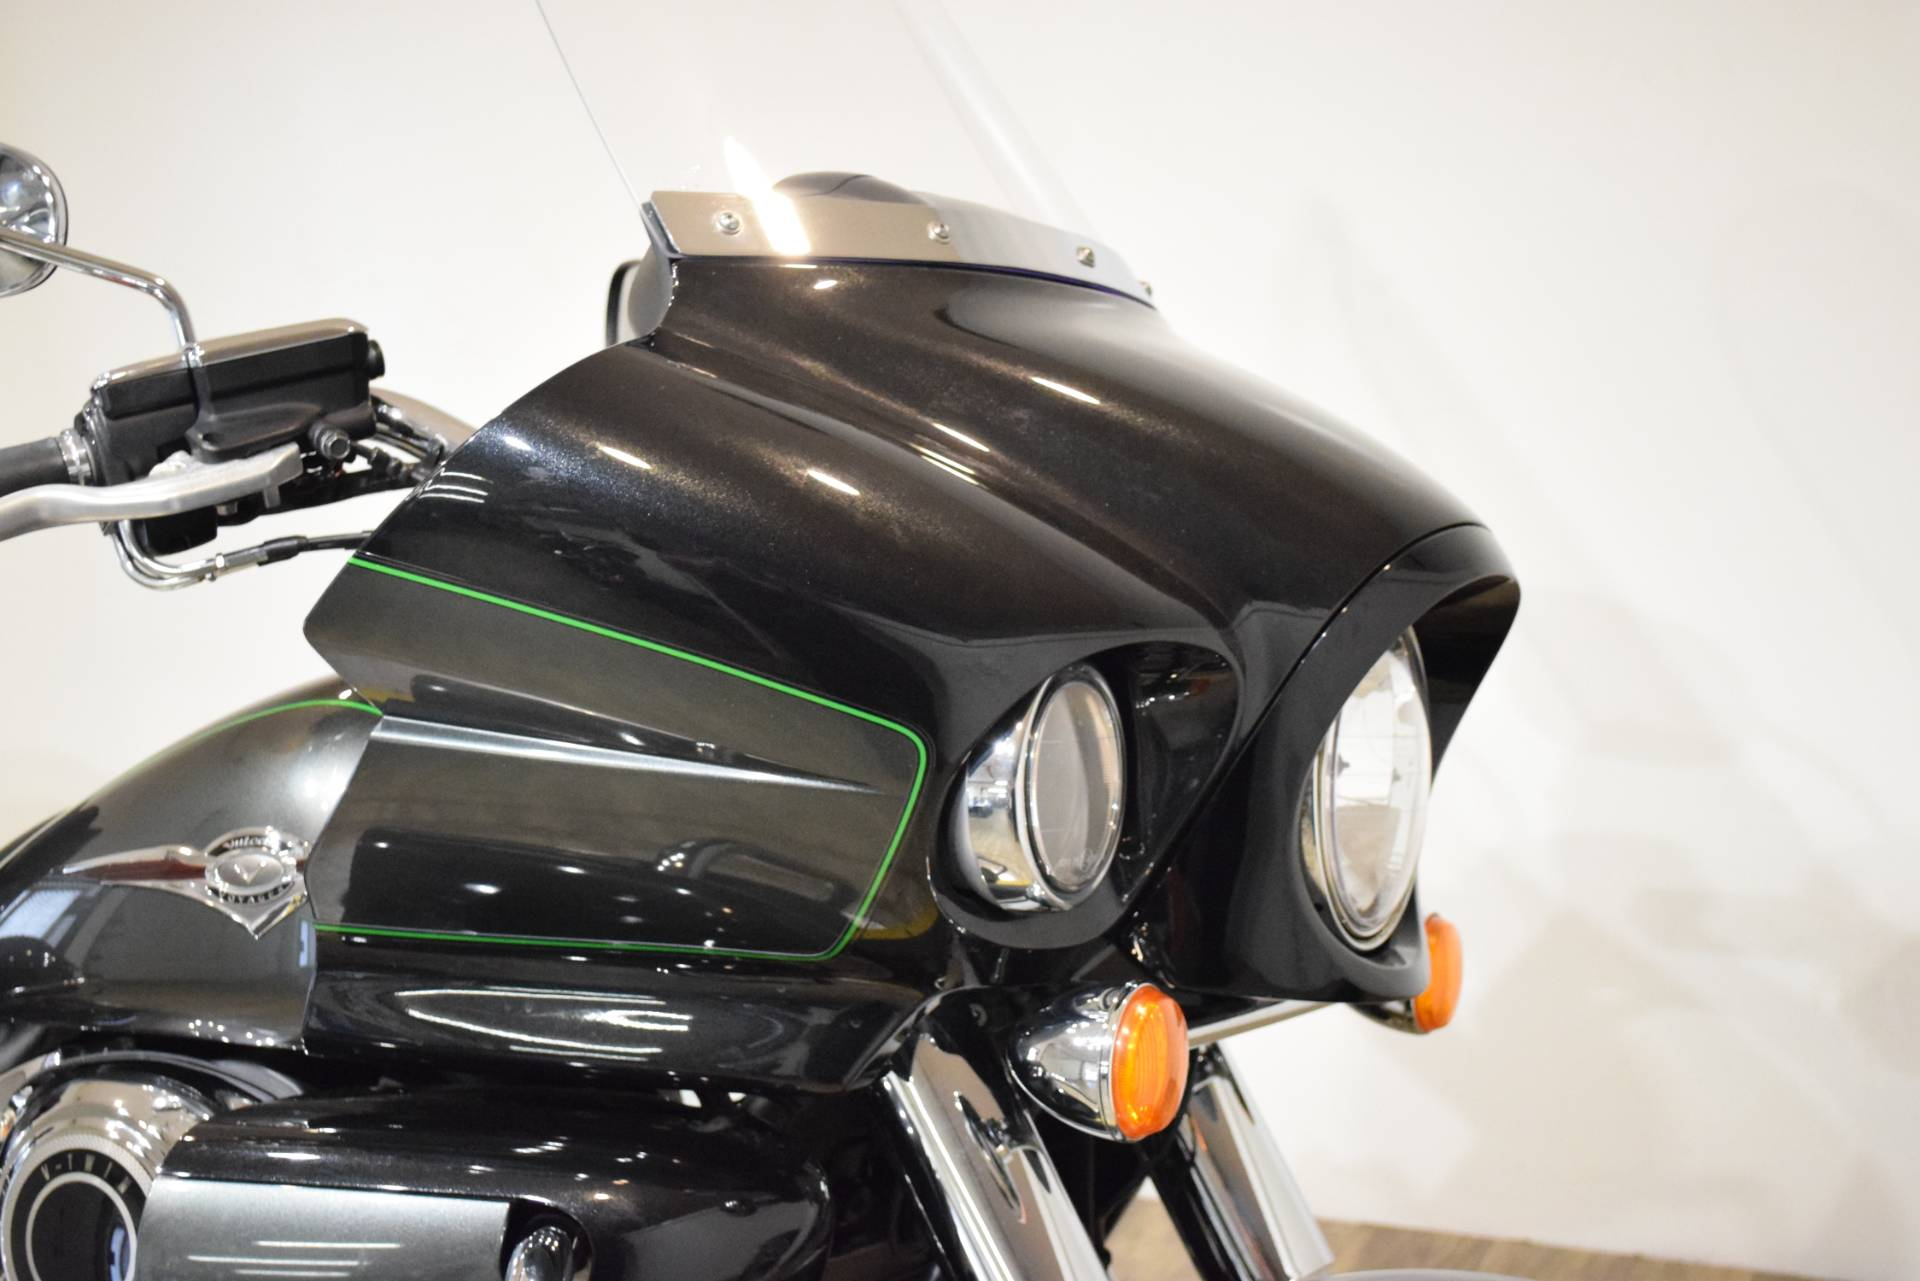 2017 Kawasaki Vulcan 1700 Voyager ABS in Wauconda, Illinois - Photo 3